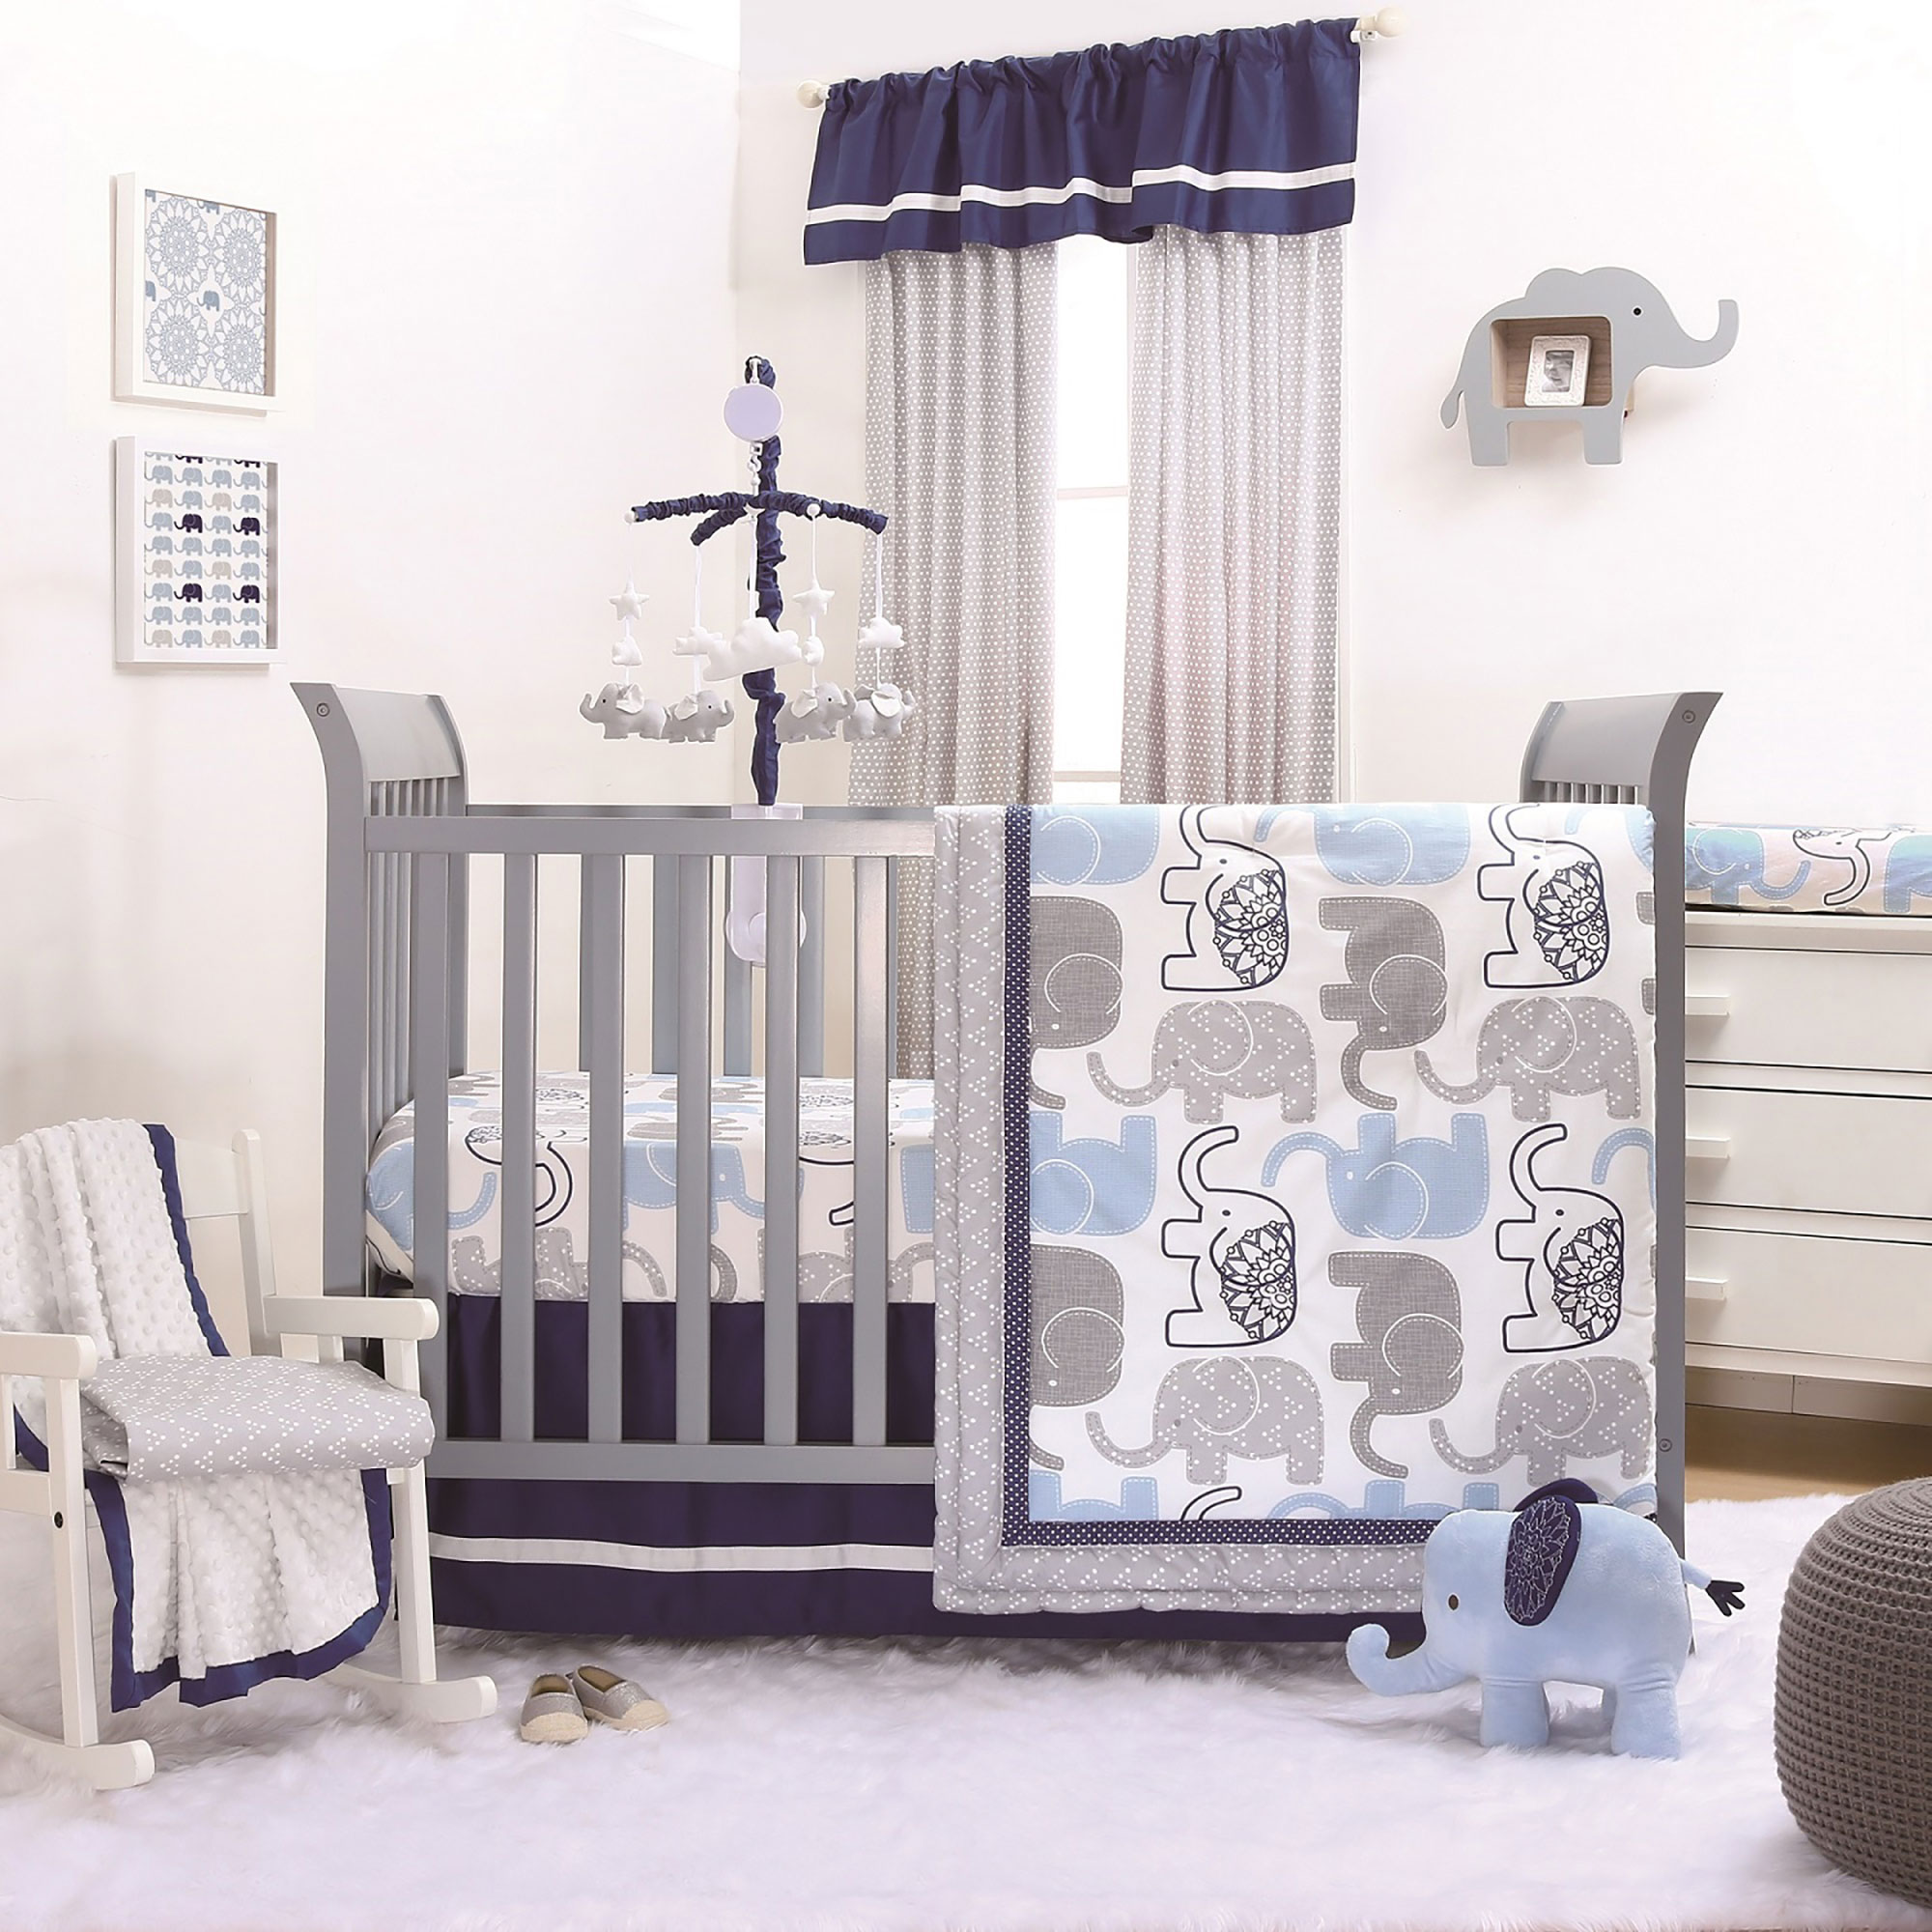 How to Choose Baby Boy Crib Bedding Sets